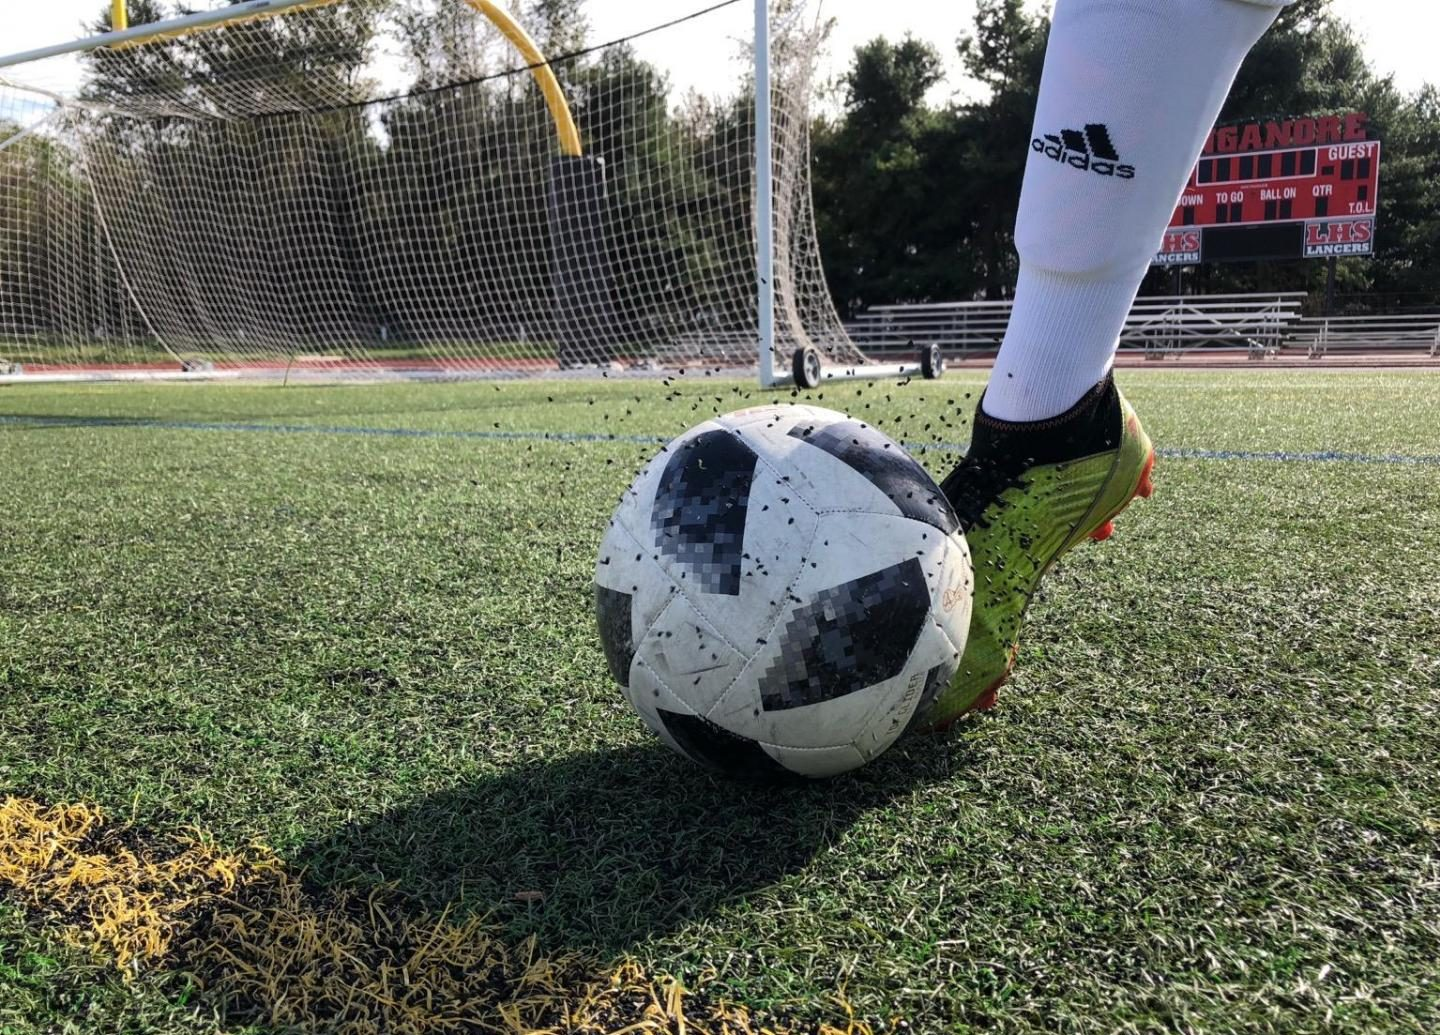 The tire crumb rubber rises high just from a bouncing soccer ball.